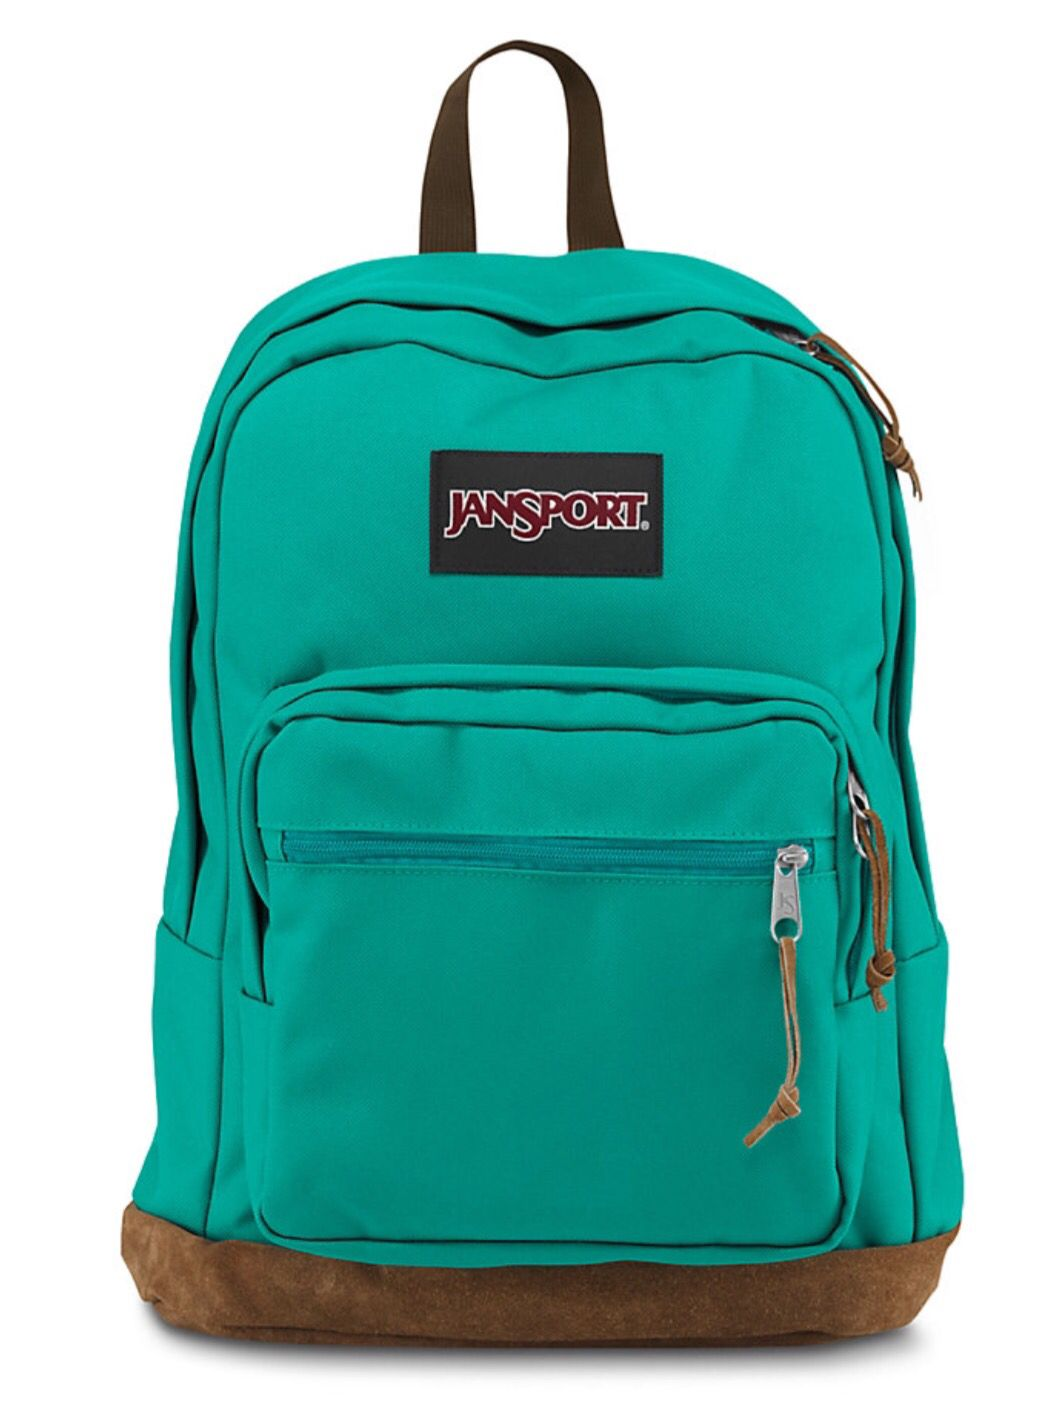 Jansport Book Bags Warranty | Fitzpatrick Painting